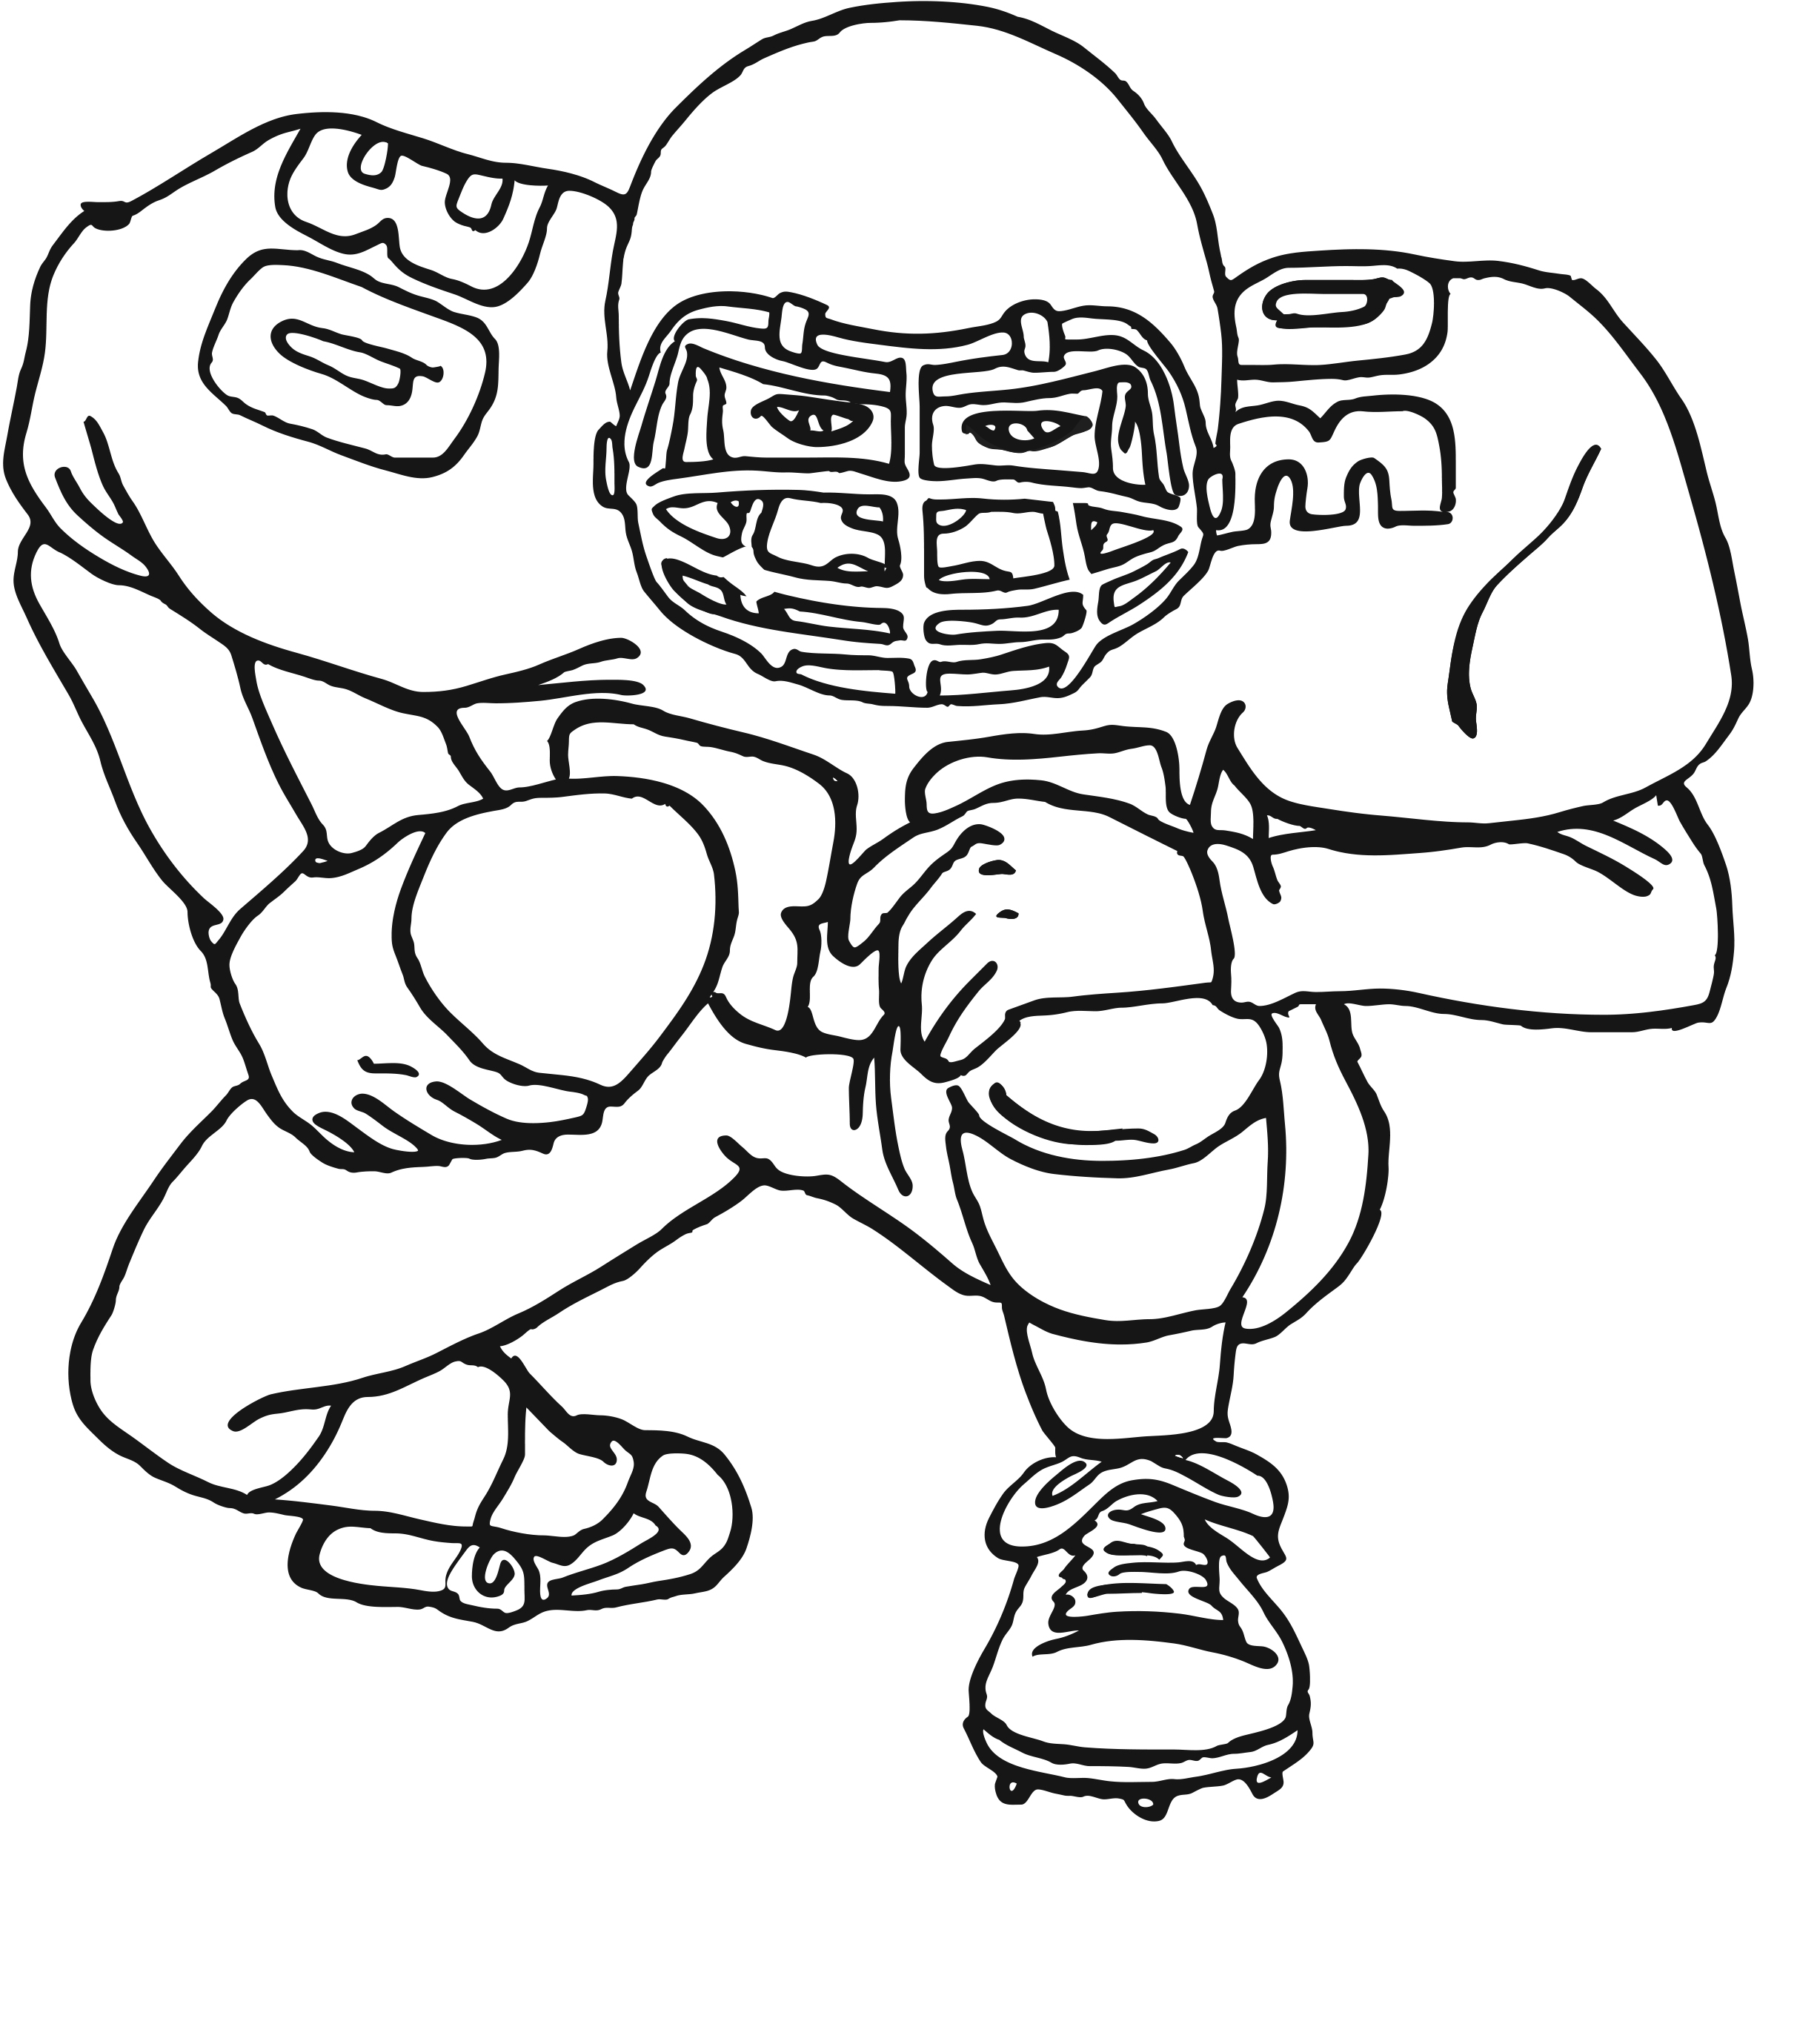 2425x2758 Football Coloring Pages For Kids